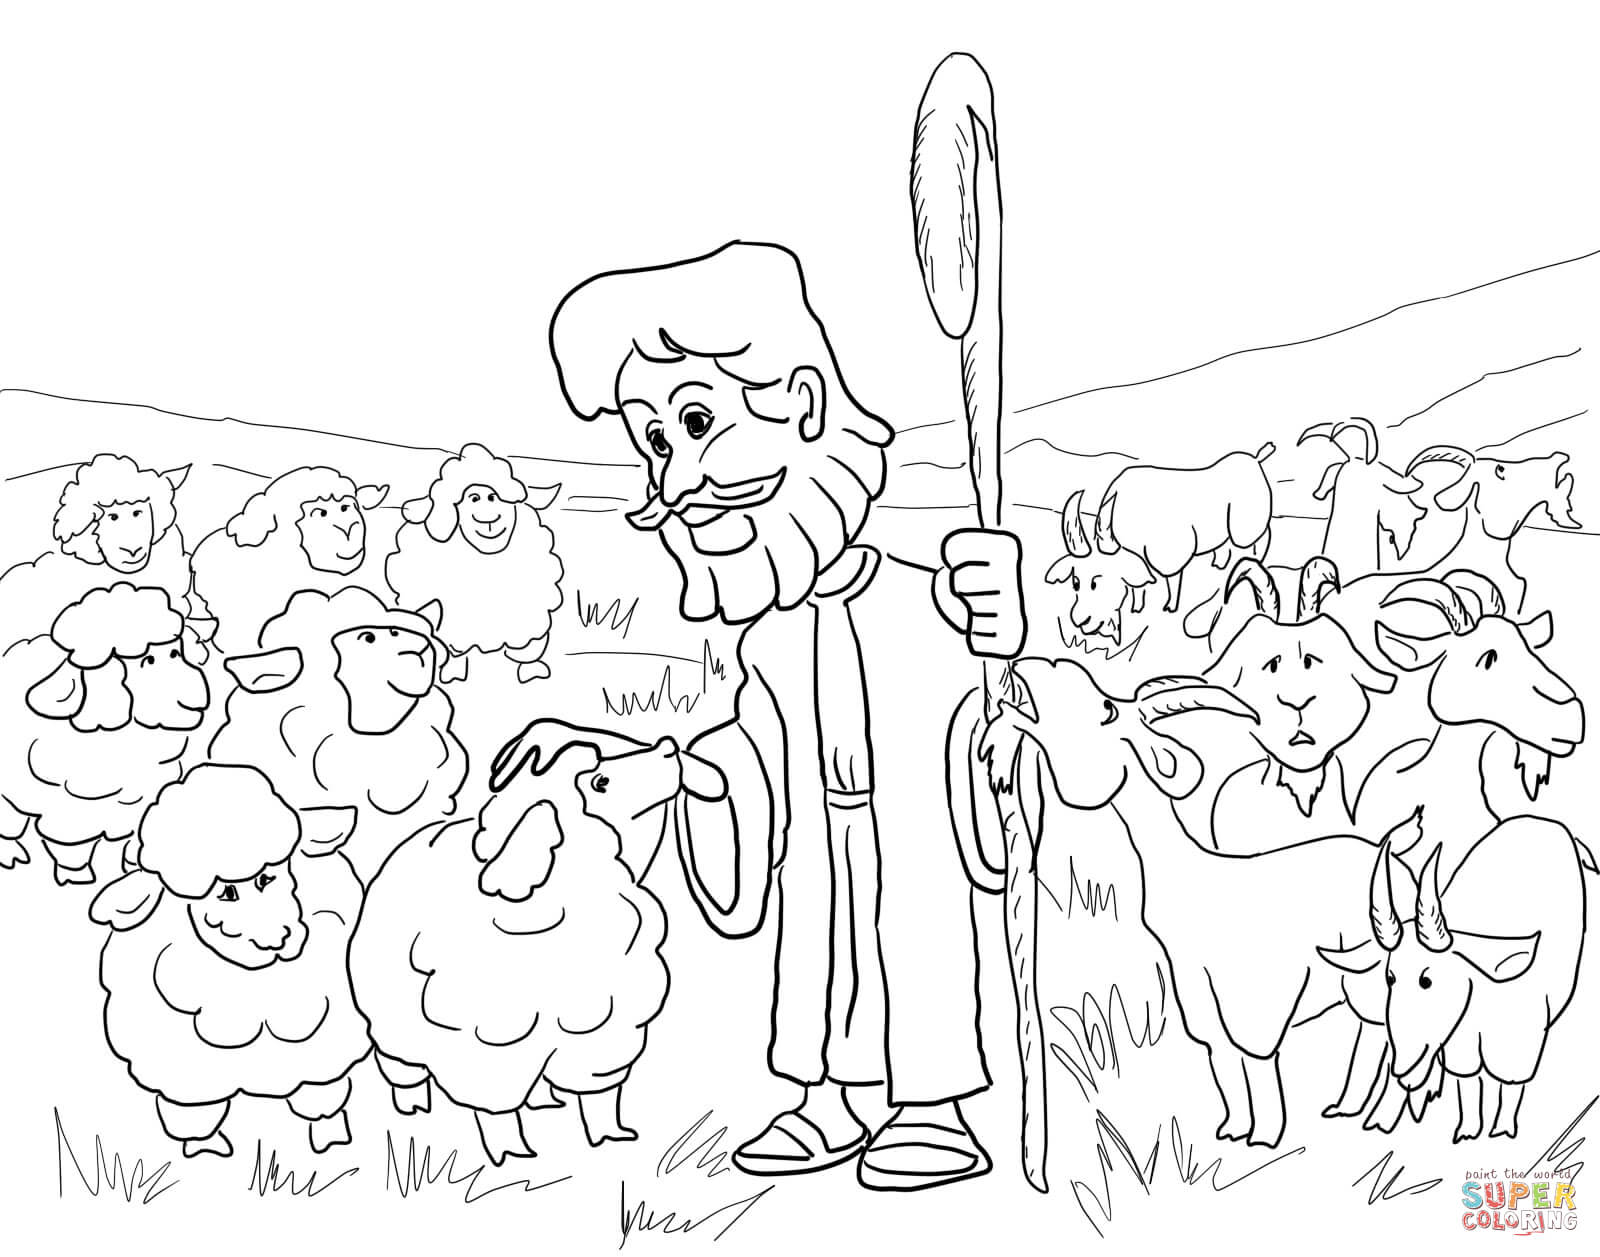 Parable of the Sheep and the Goats coloring page | Free Printable ...